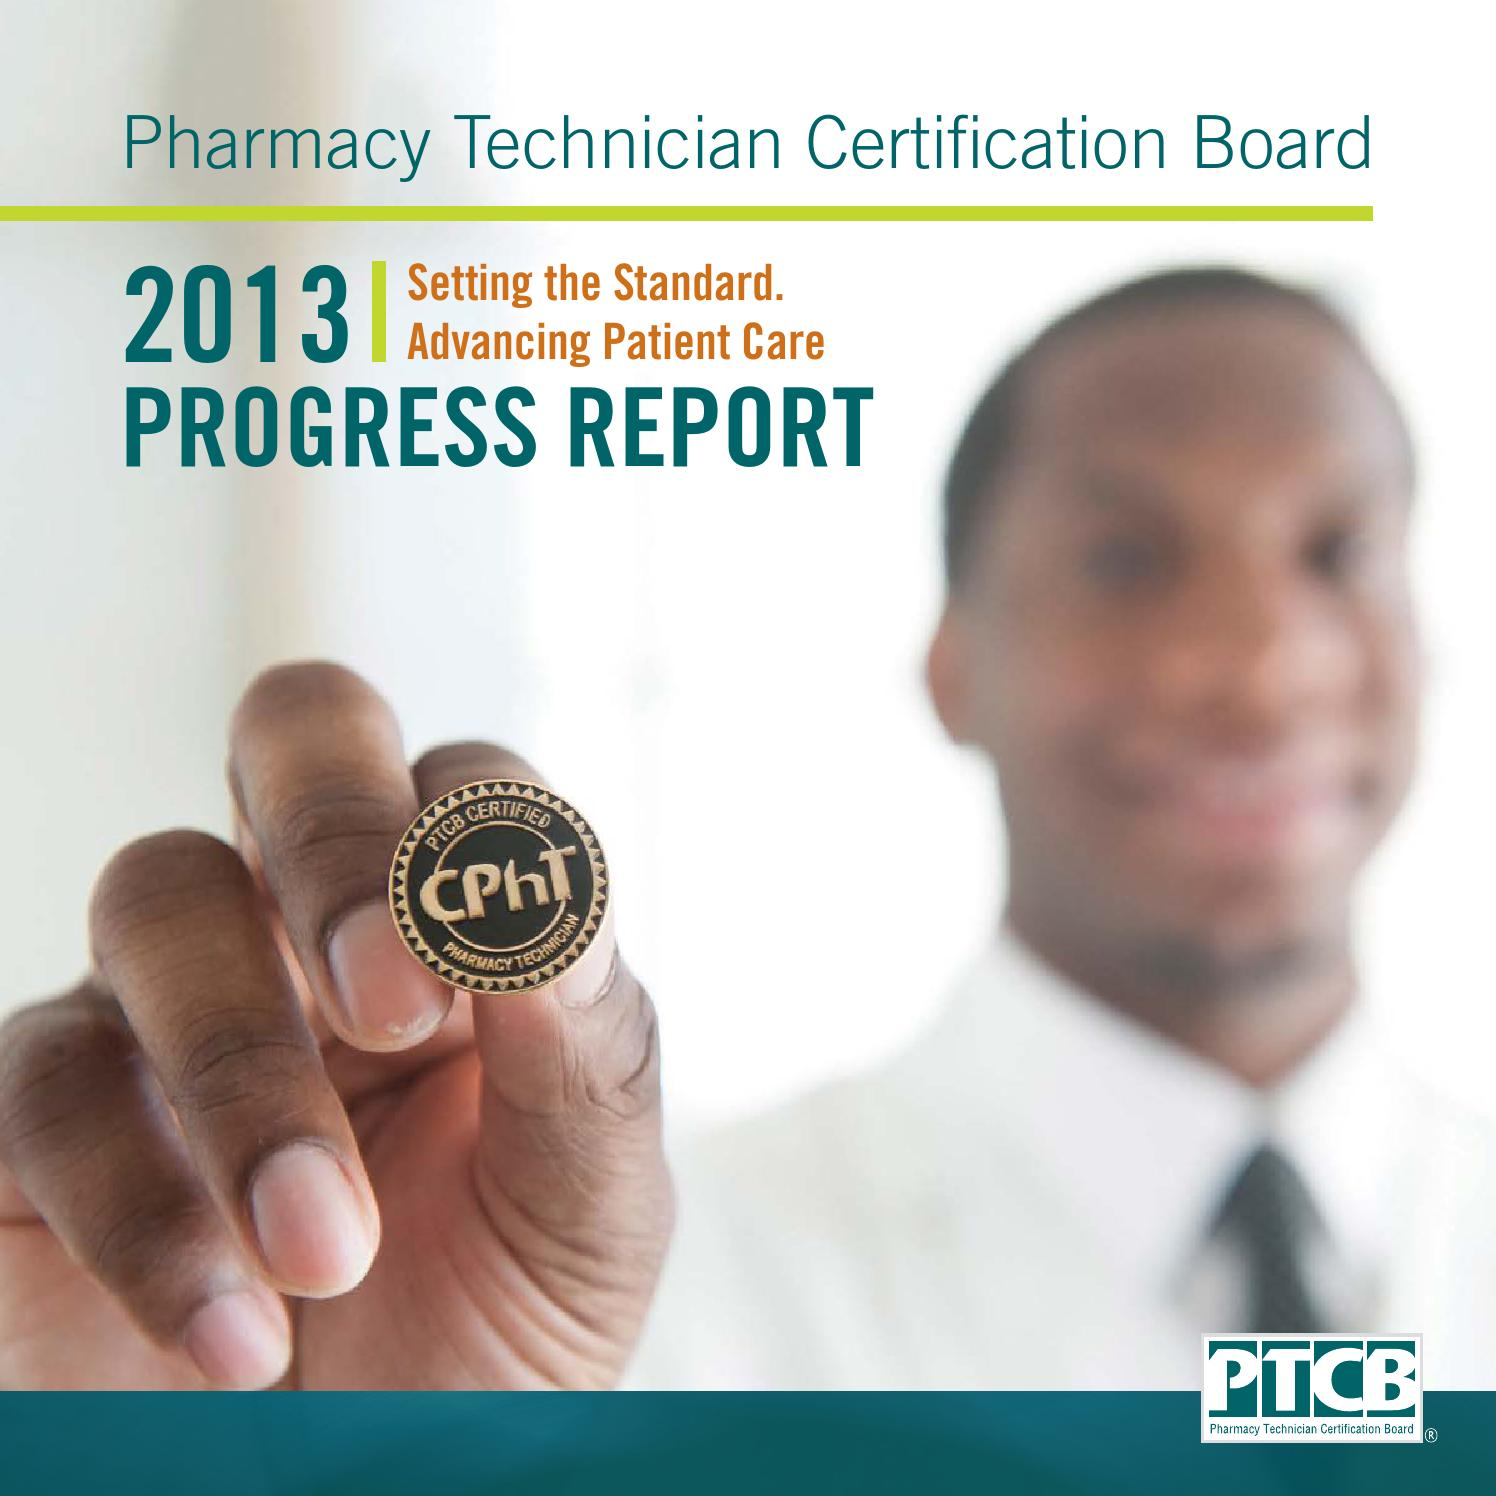 2013 Pharmacy Technician Certification Board Annual